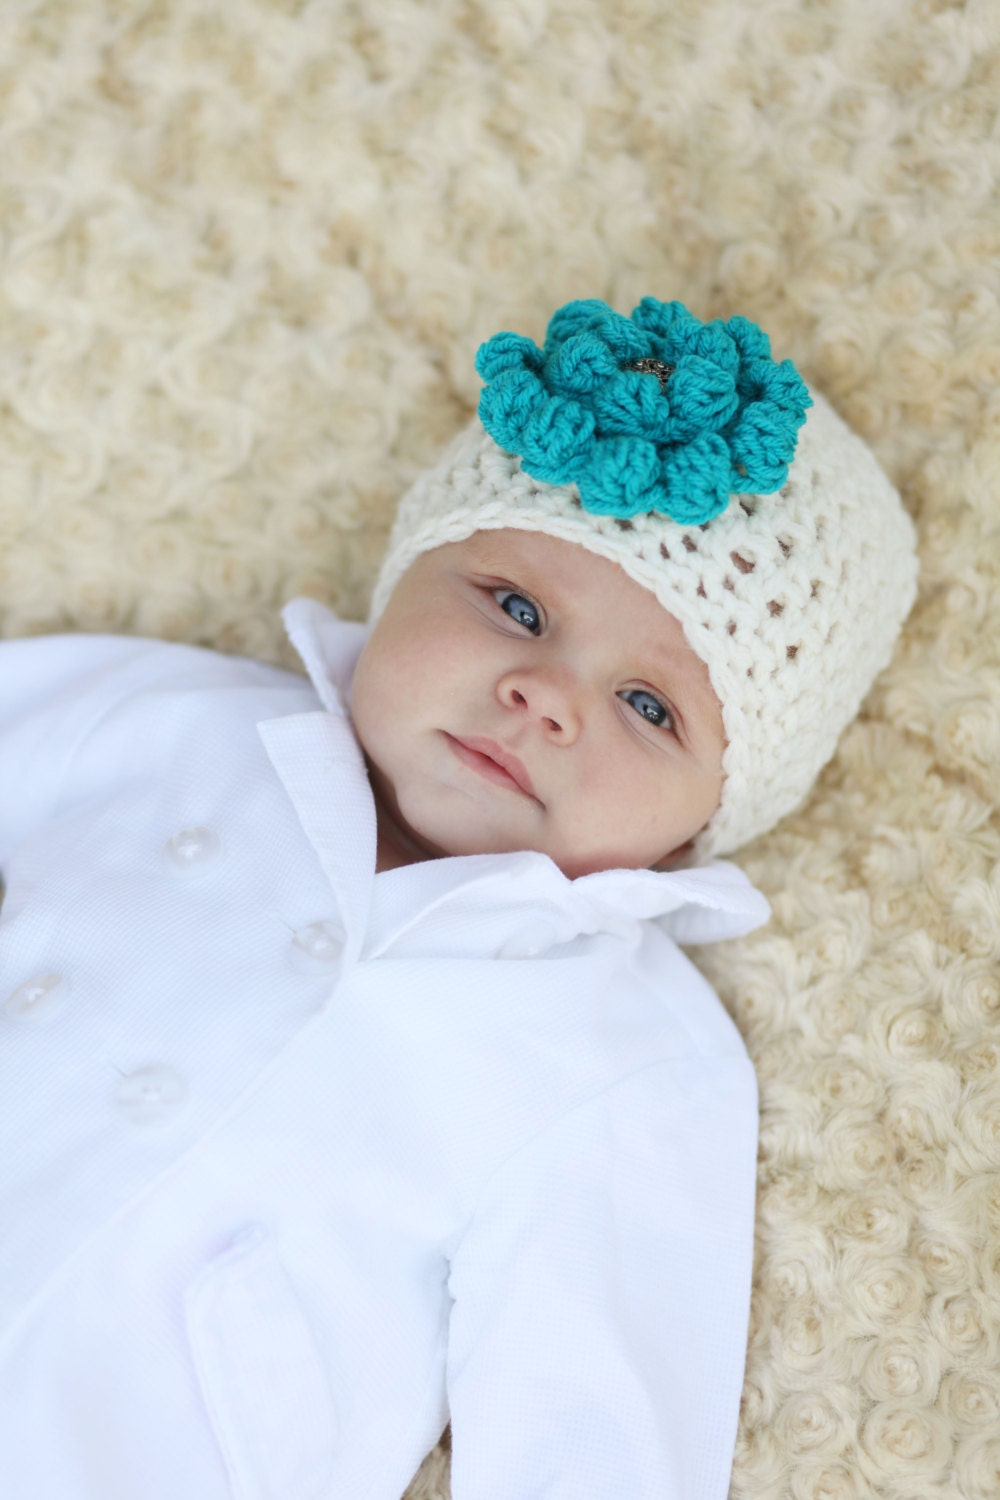 Stylish Baby Gifts Australia : Gifts for baby girl hand crocheted cream hat unique